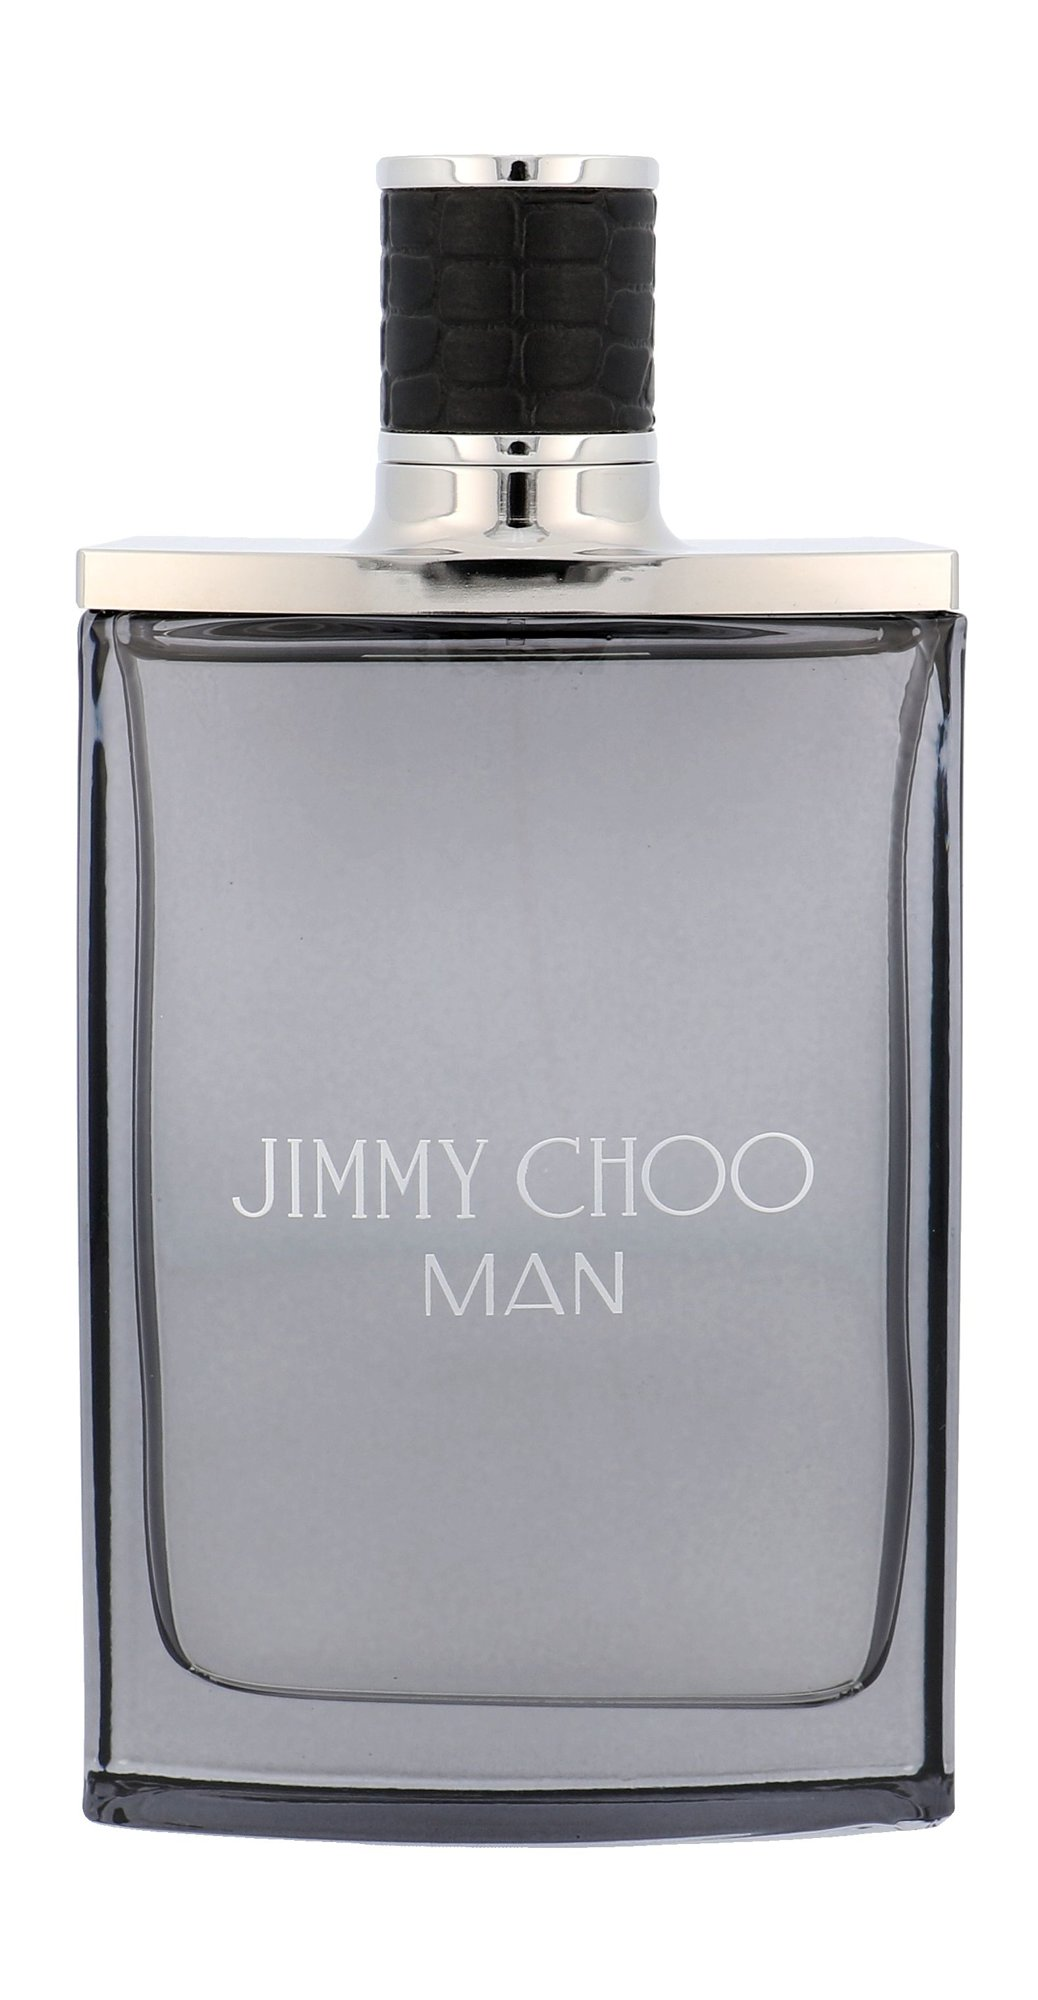 Jimmy Choo Jimmy Choo Man EDT 100ml